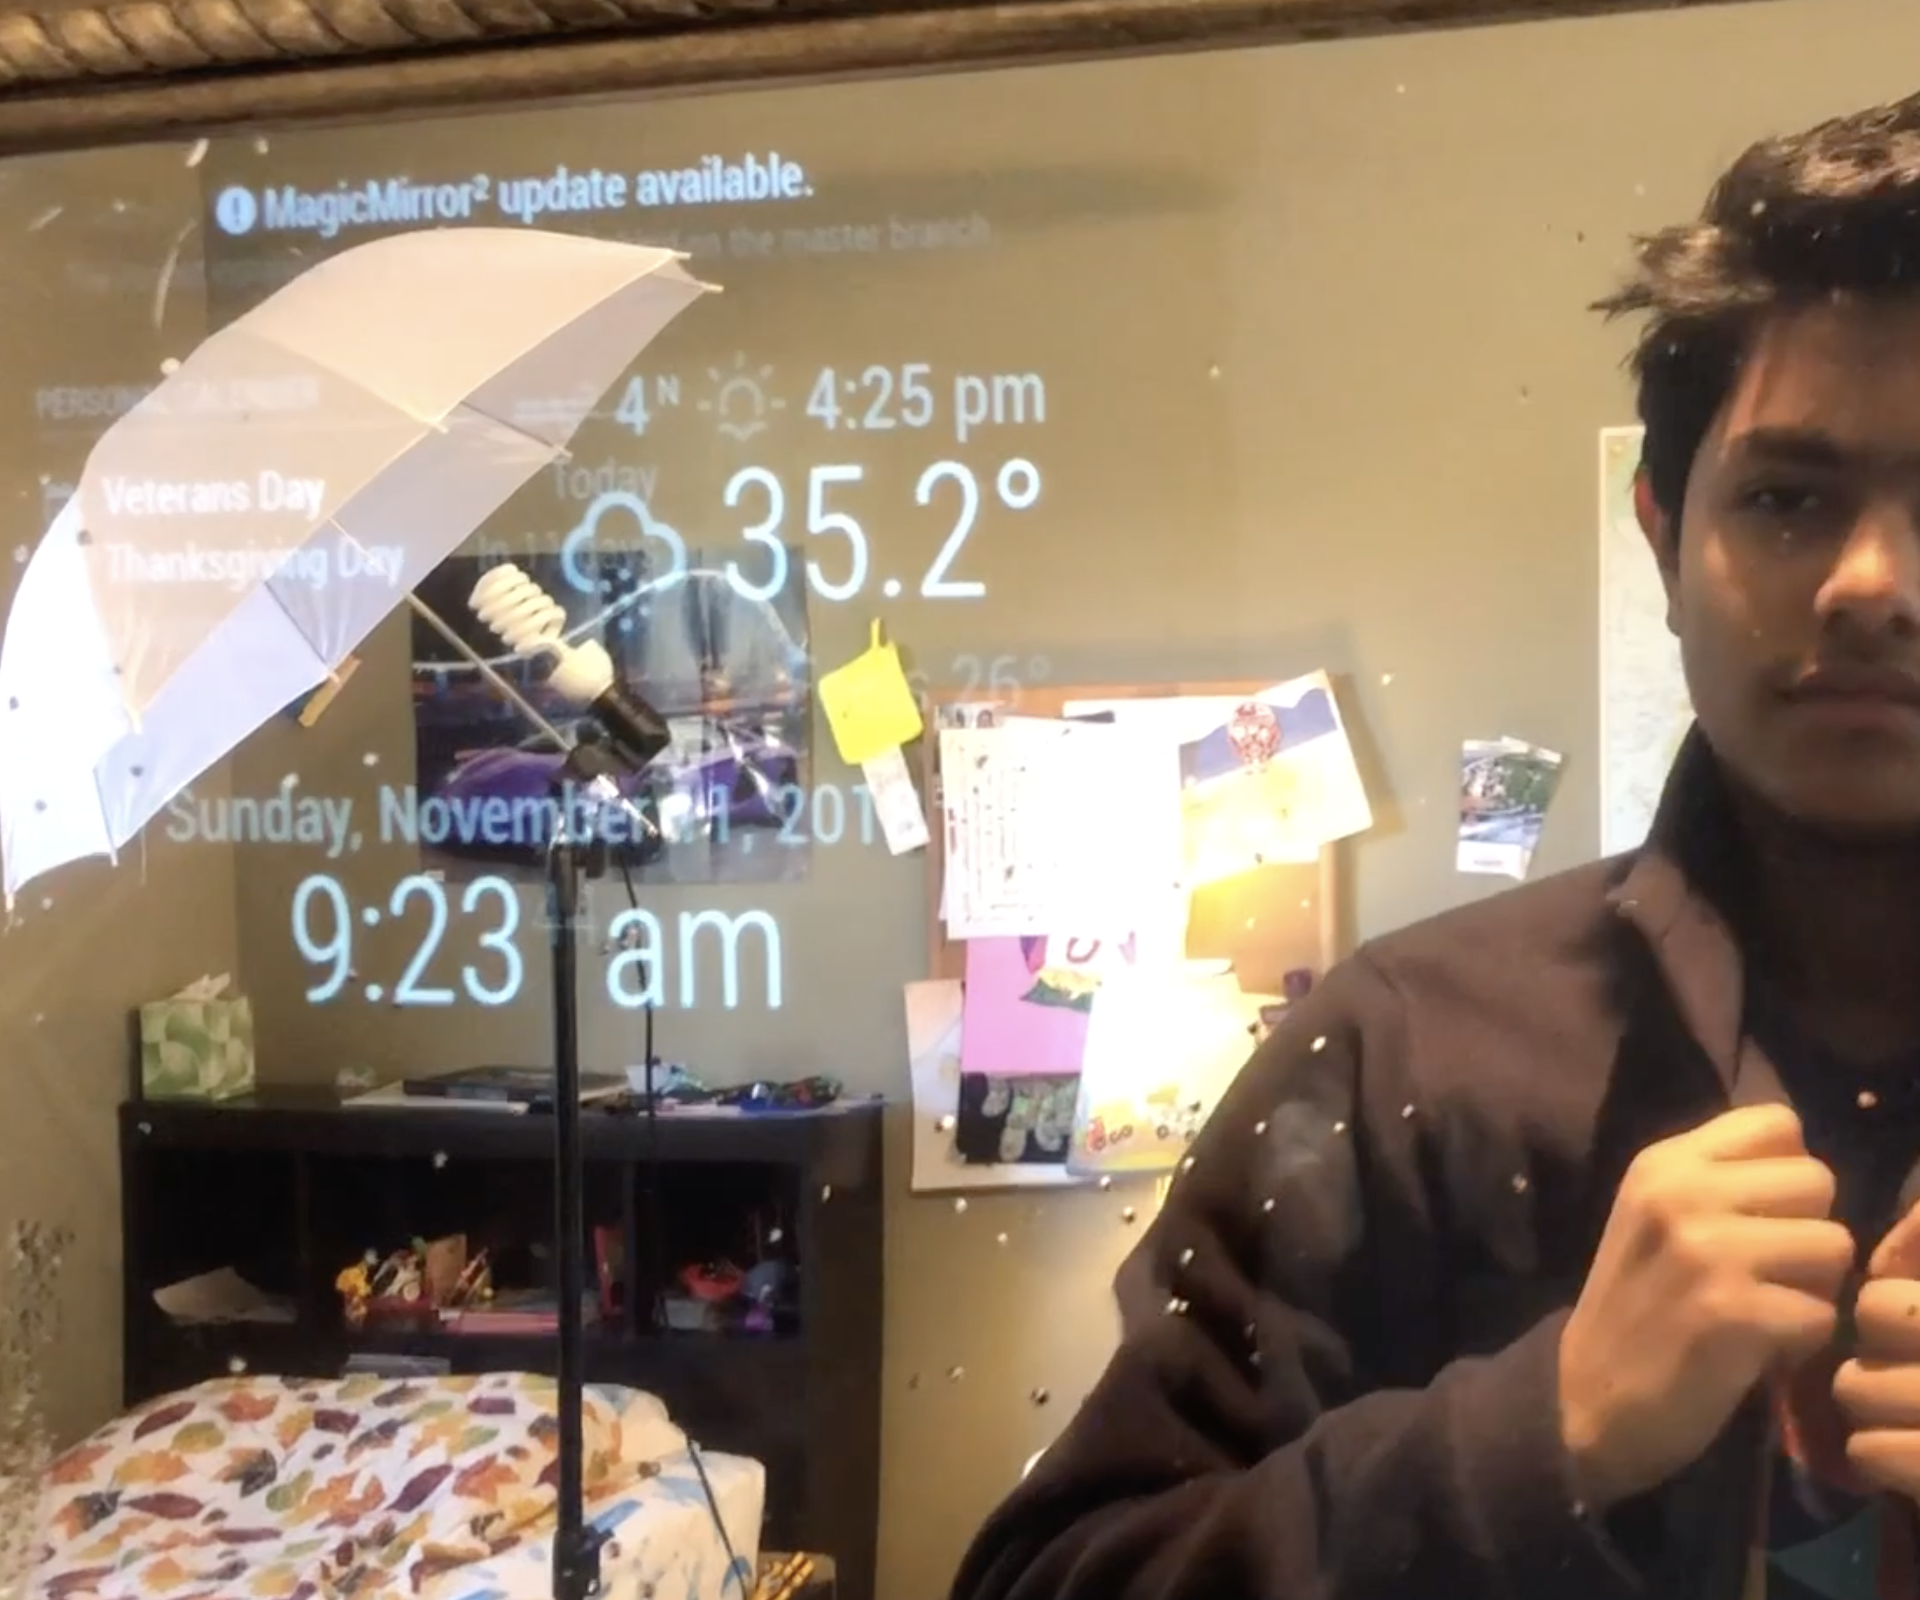 Make Your Own Smart Mirror for Under $80 - Using Raspberry Pi